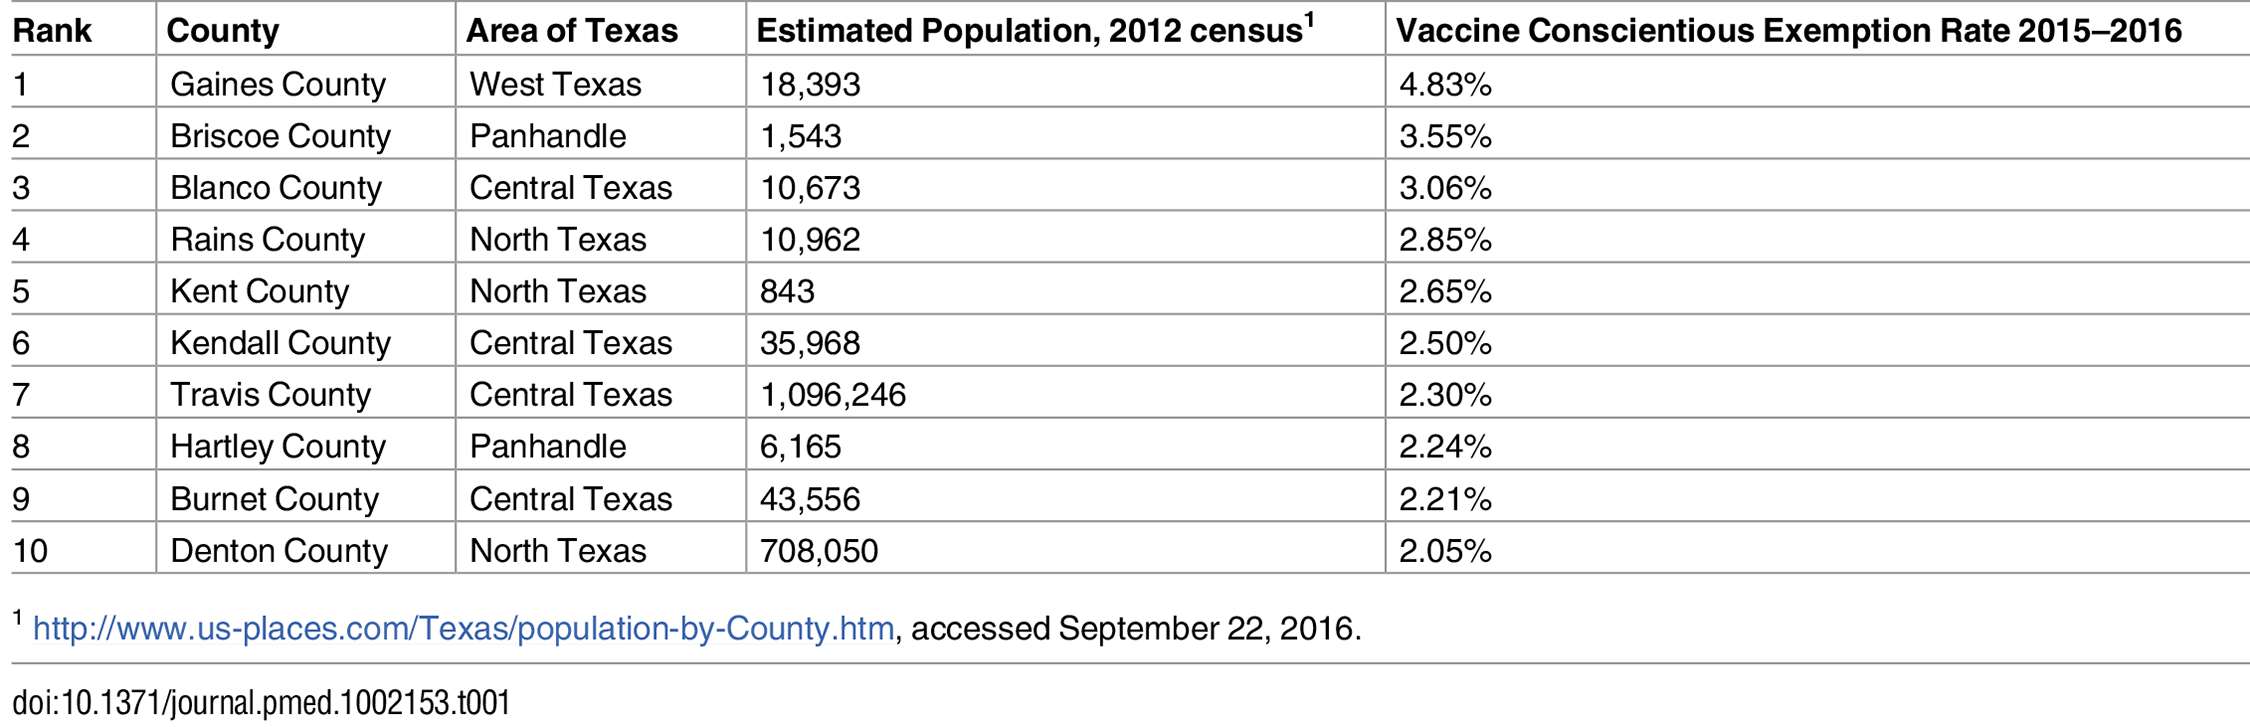 """Rank of leading Texas county vaccine """"conscientious exemption"""" rates (based on information from the Texas Department of State Health Services <a href=&quot;https://www.dshs.texas.gov/immunize/coverage/Conscientious-Exemptions-Data.shtm&quot;>https://www.dshs.texas.gov/immunize/coverage/Conscientious-Exemptions-Data.shtm</a>)."""